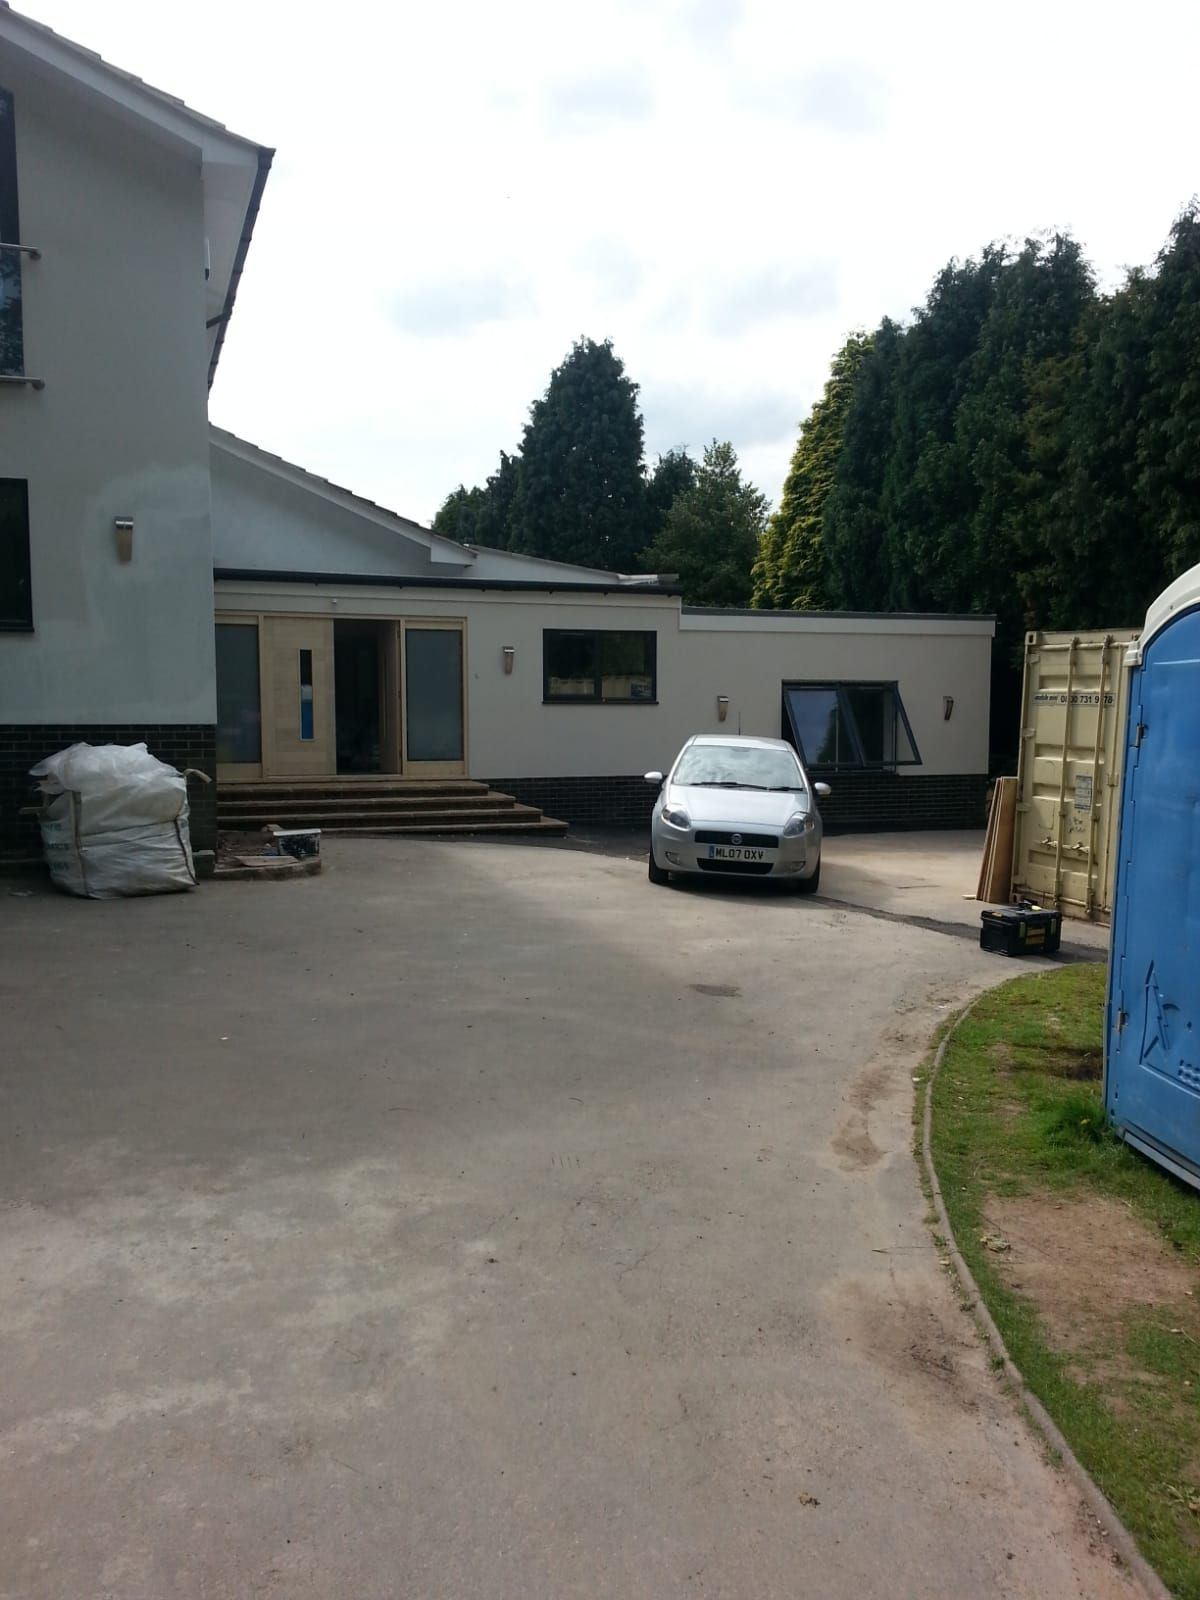 Four bed bungalow before being converted into 7 bed house